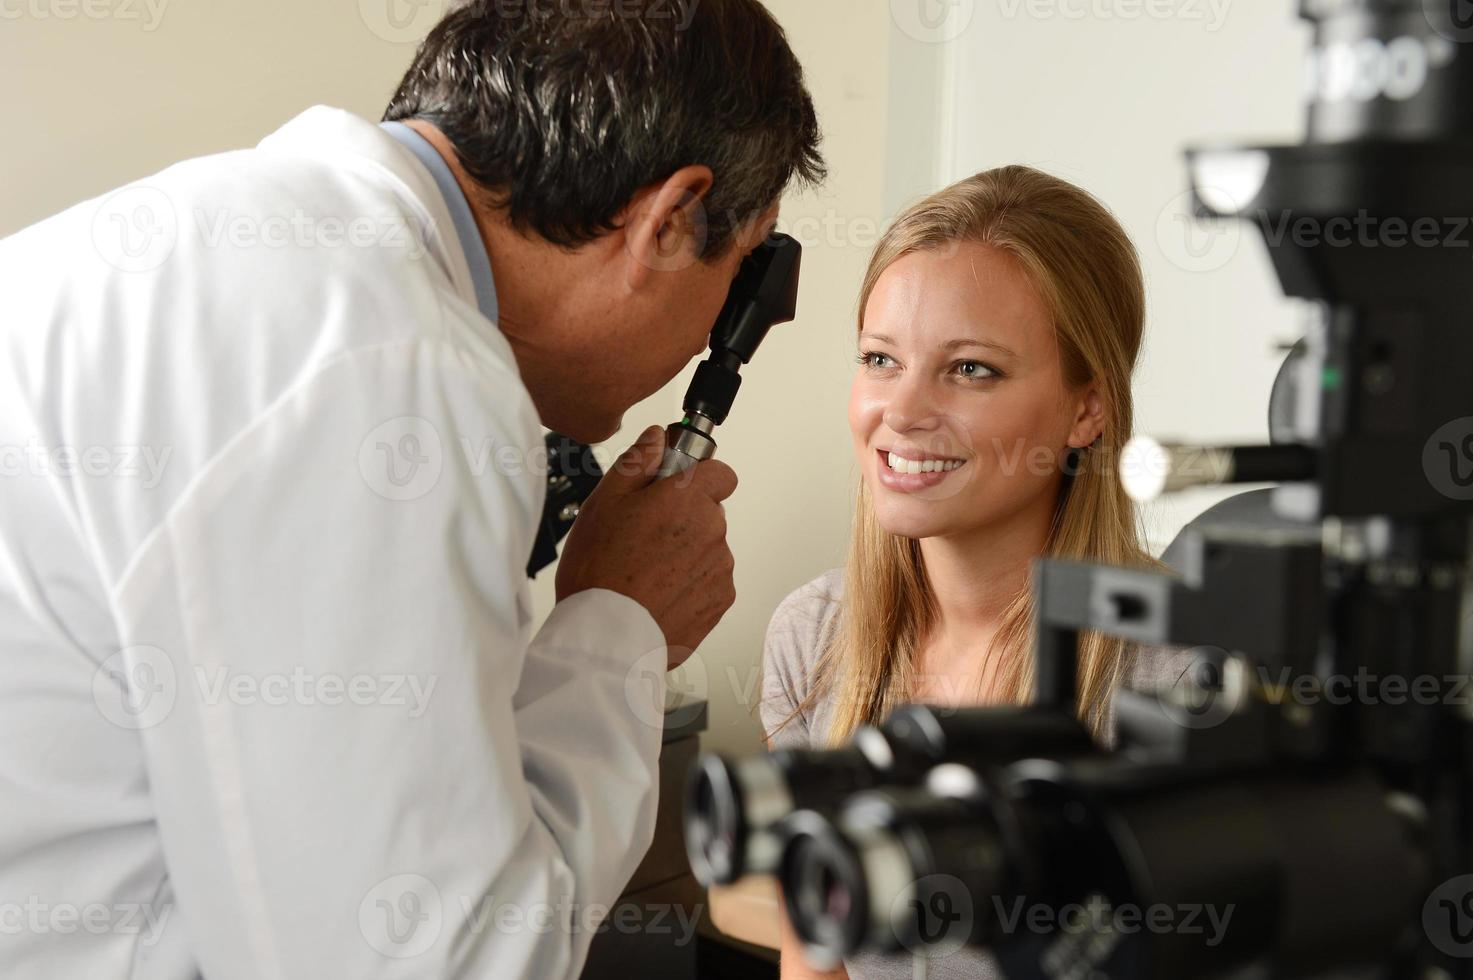 Eye Doctor with female patient photo